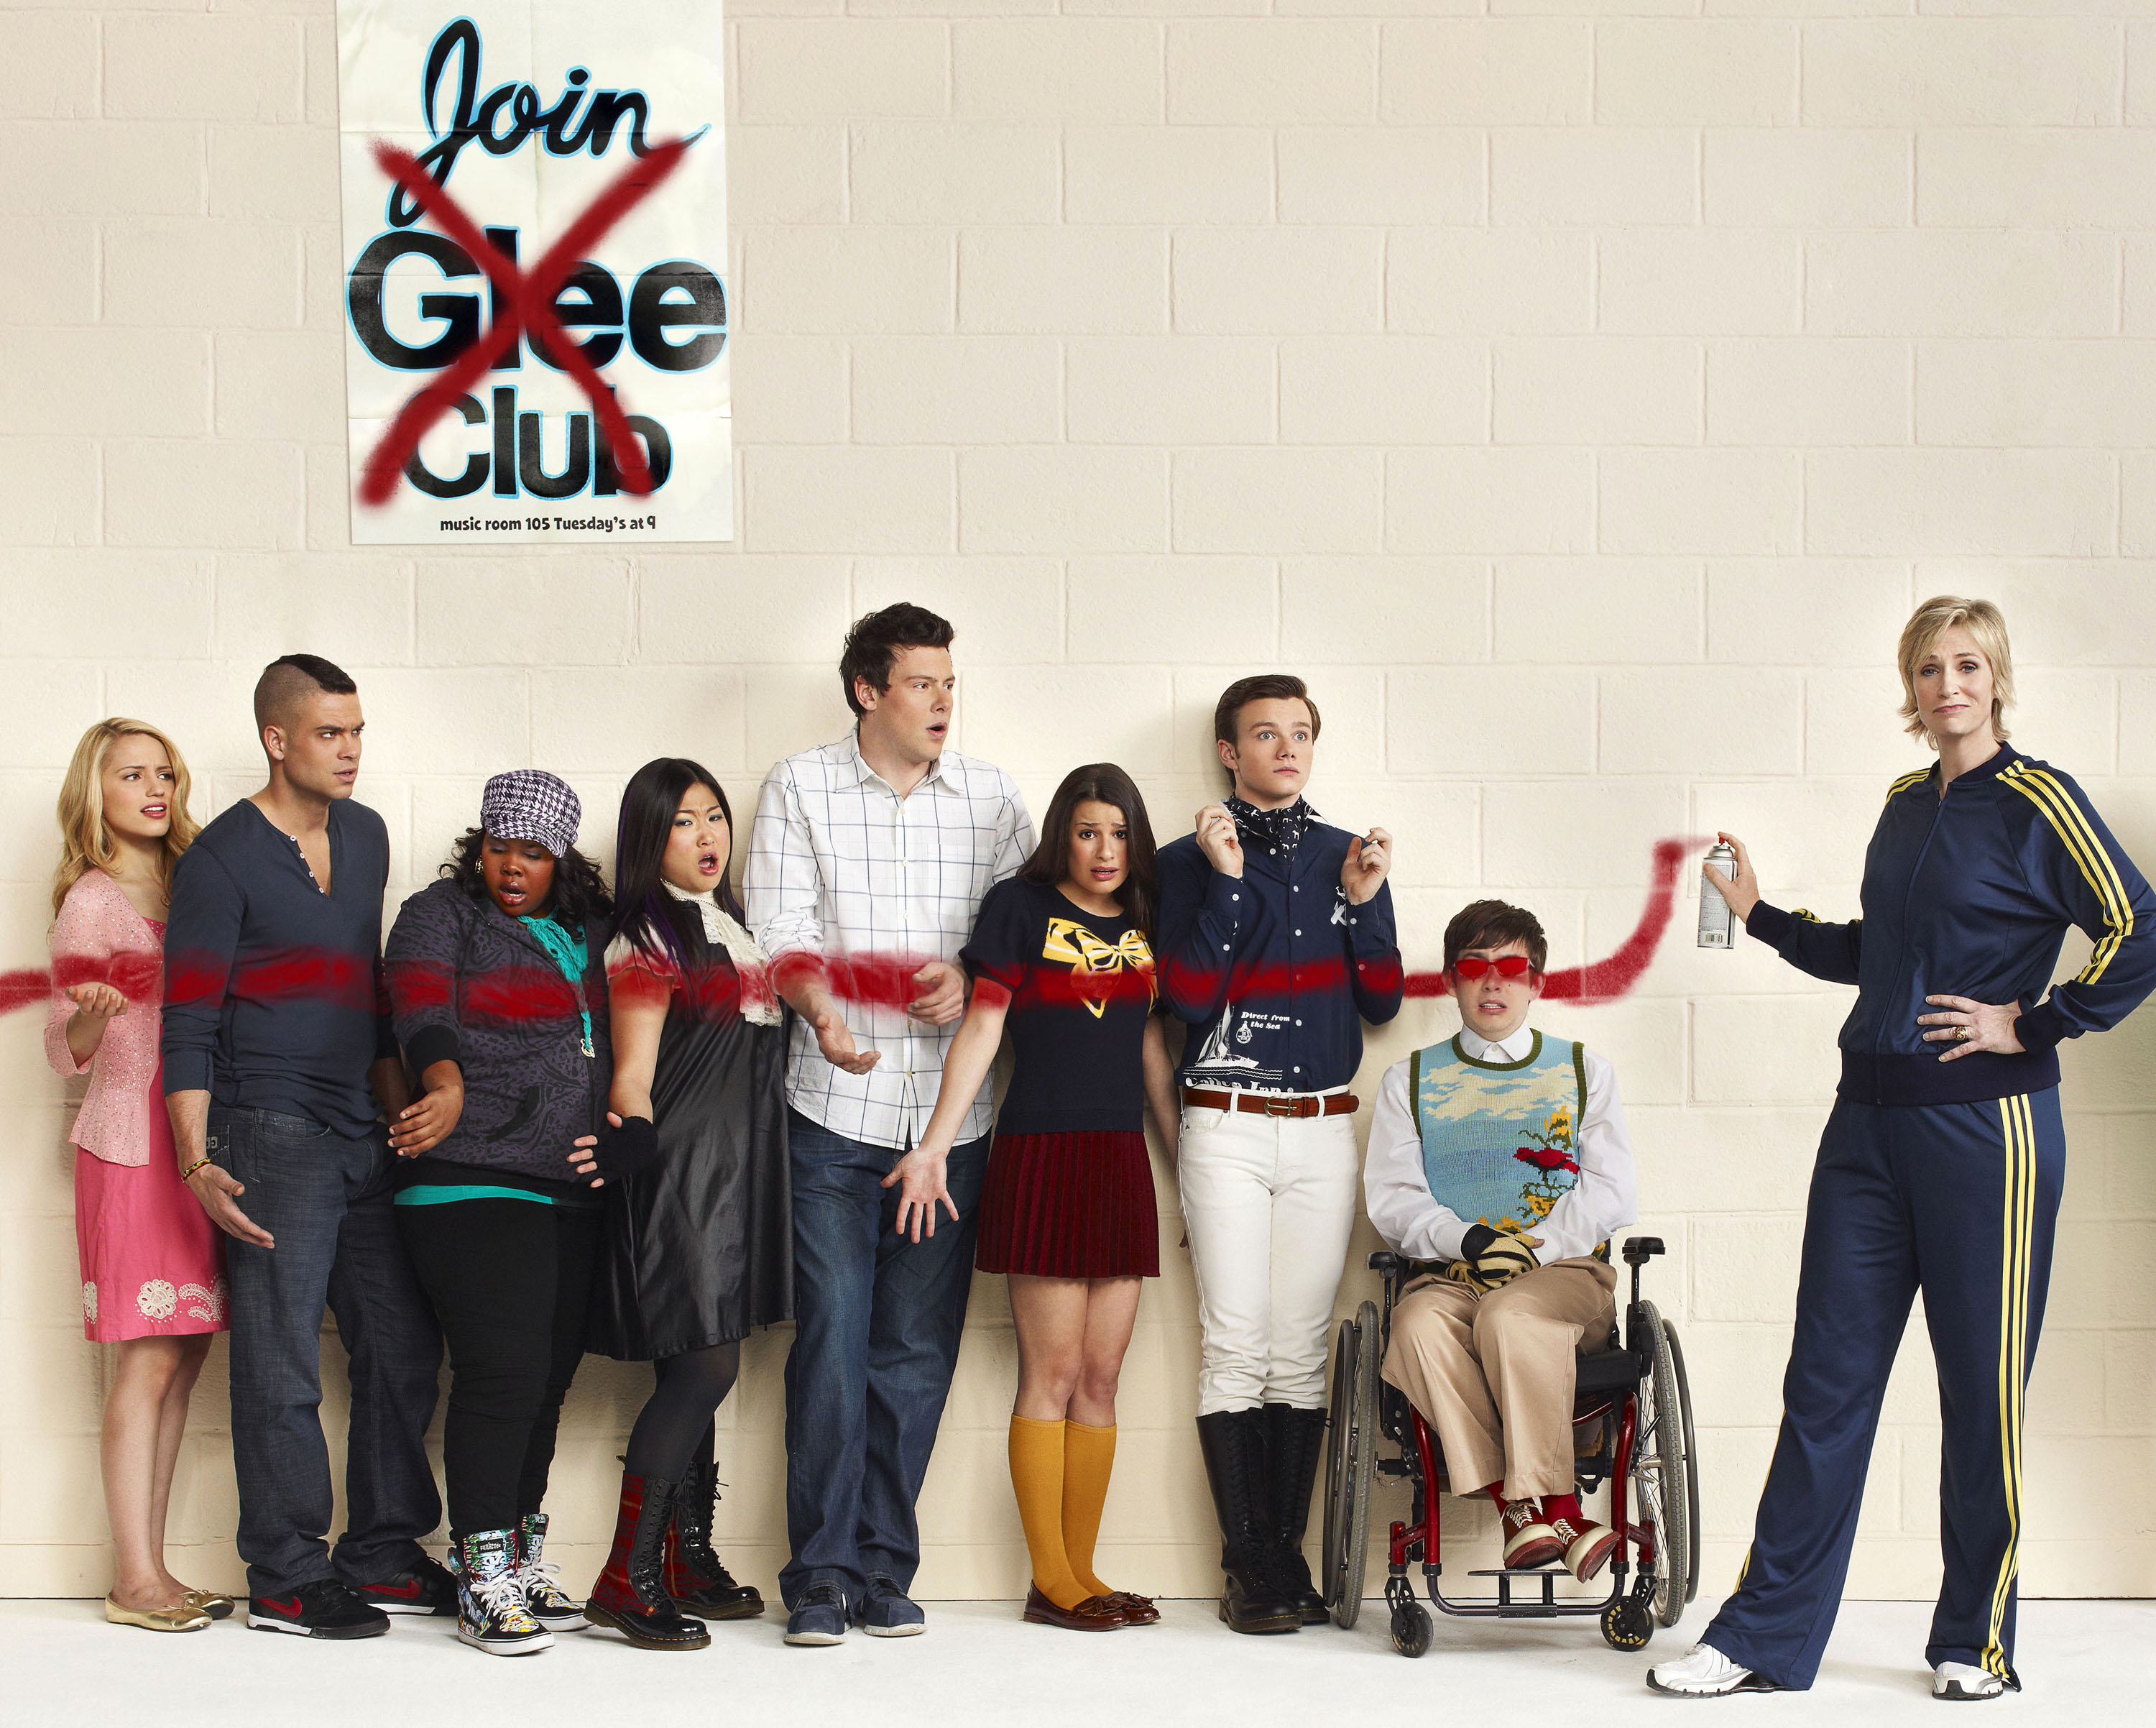 Free download Glee Season 3 wallpaper 25493 [3000x2404] for